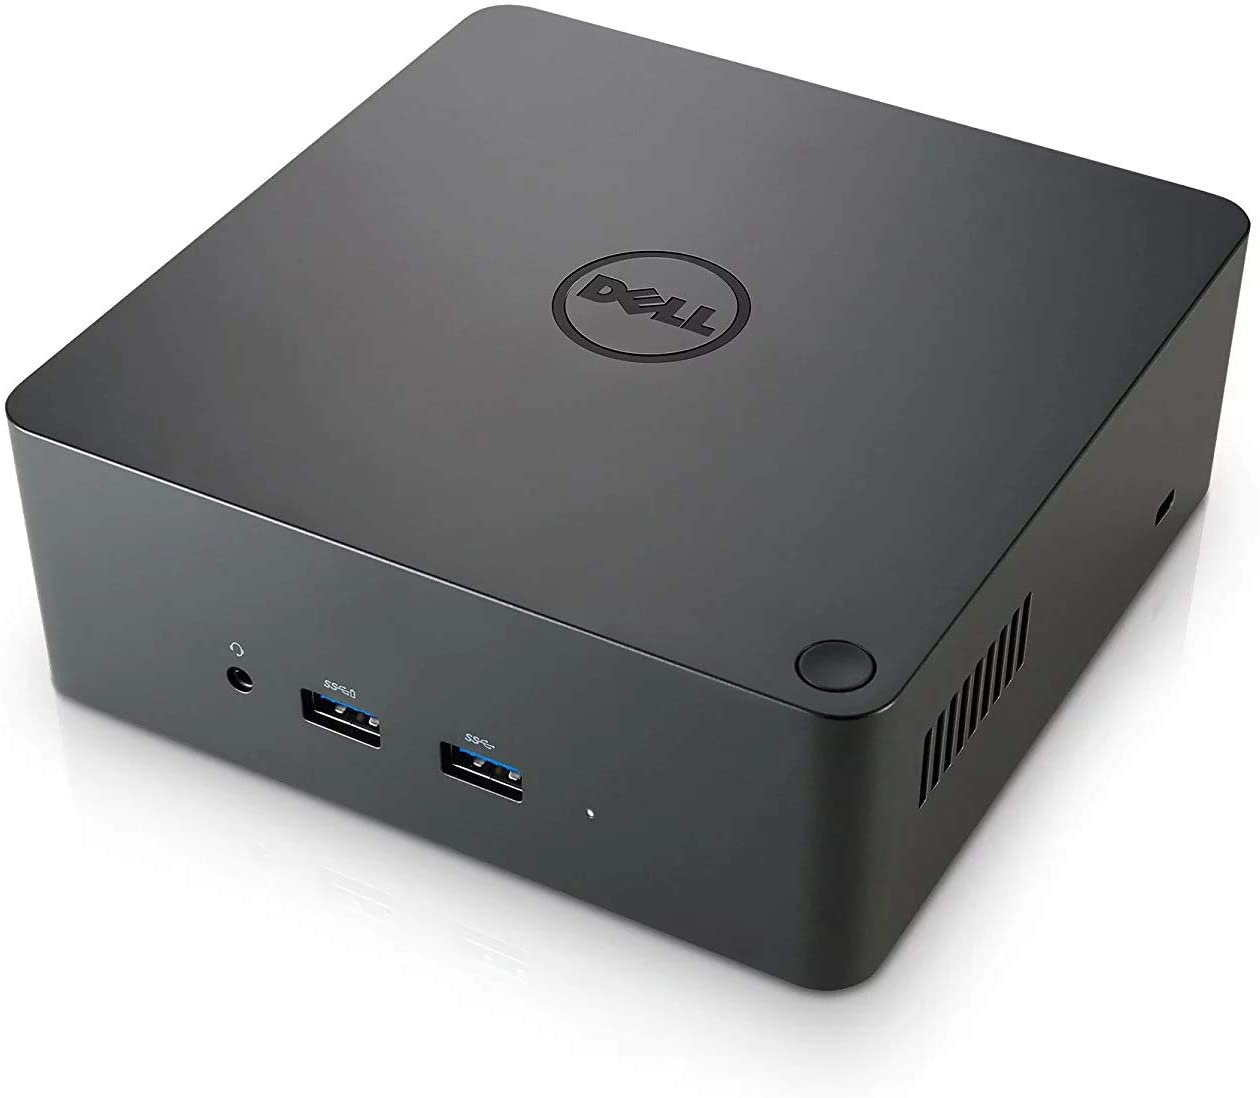 Dell Business Thunderbolt 3 (USB-C) Dock - TB16 with 180W Adapter 452-BCNP